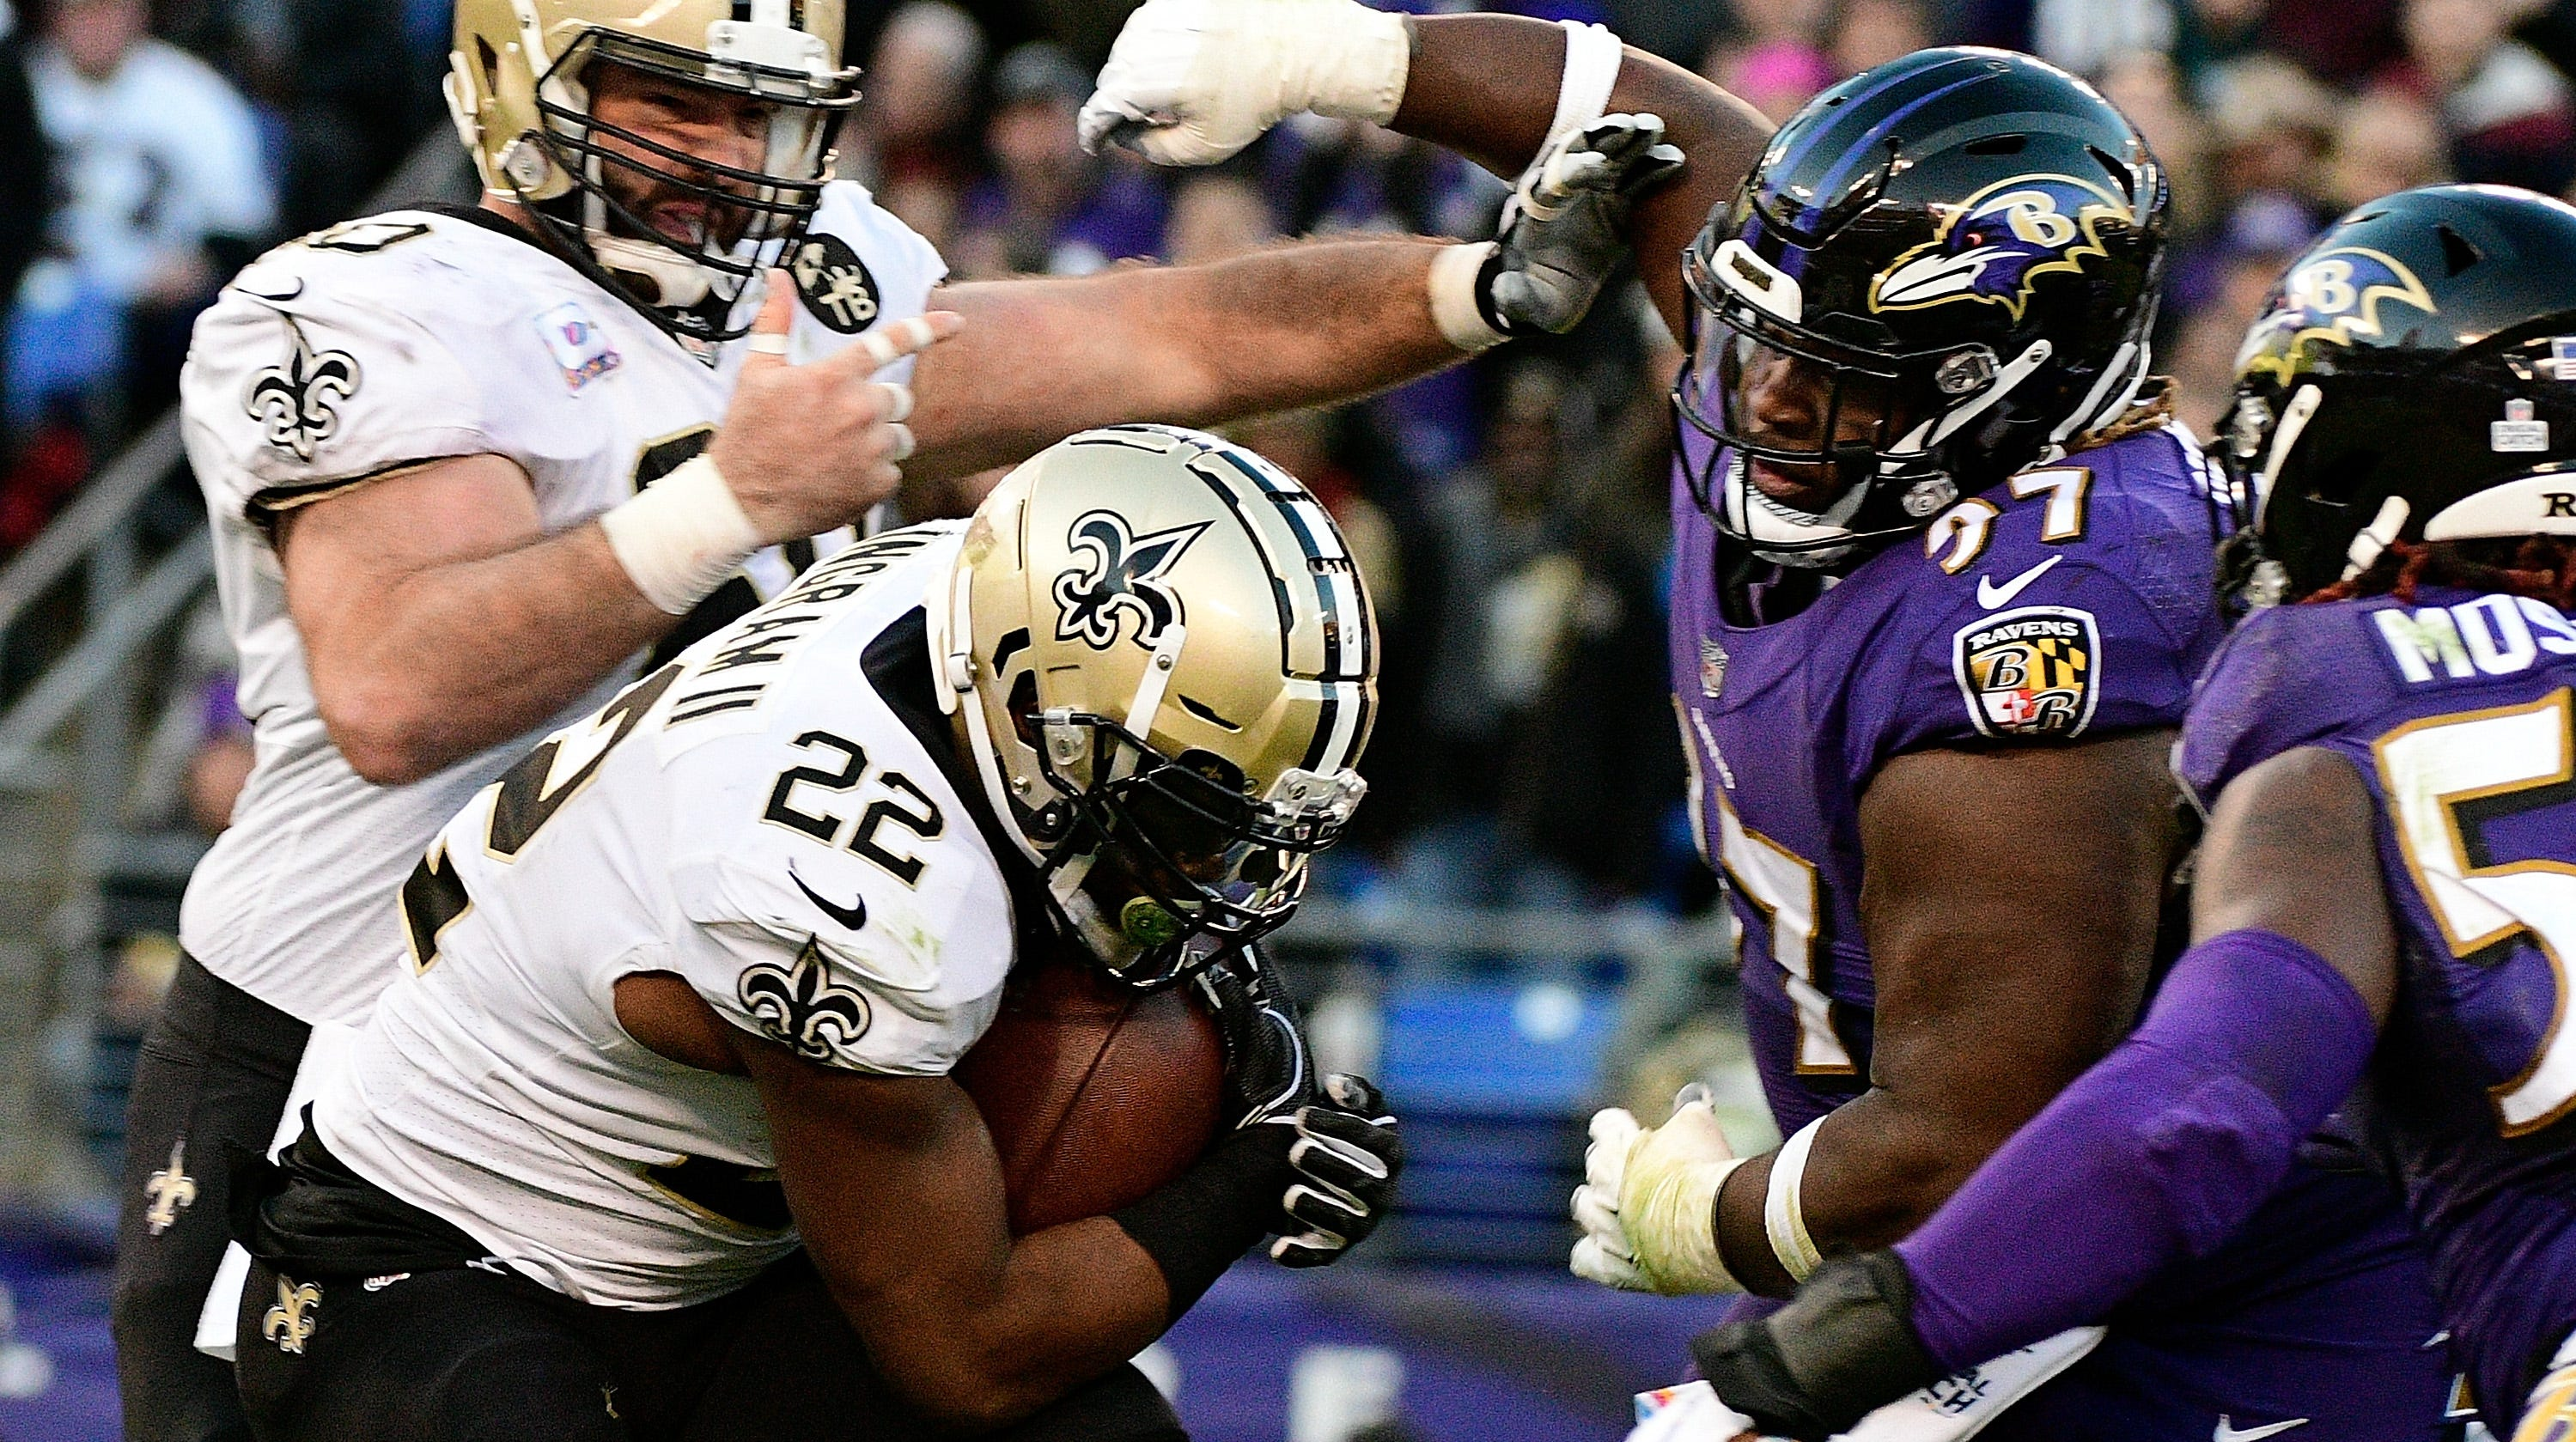 Saints survive near-perfect football game